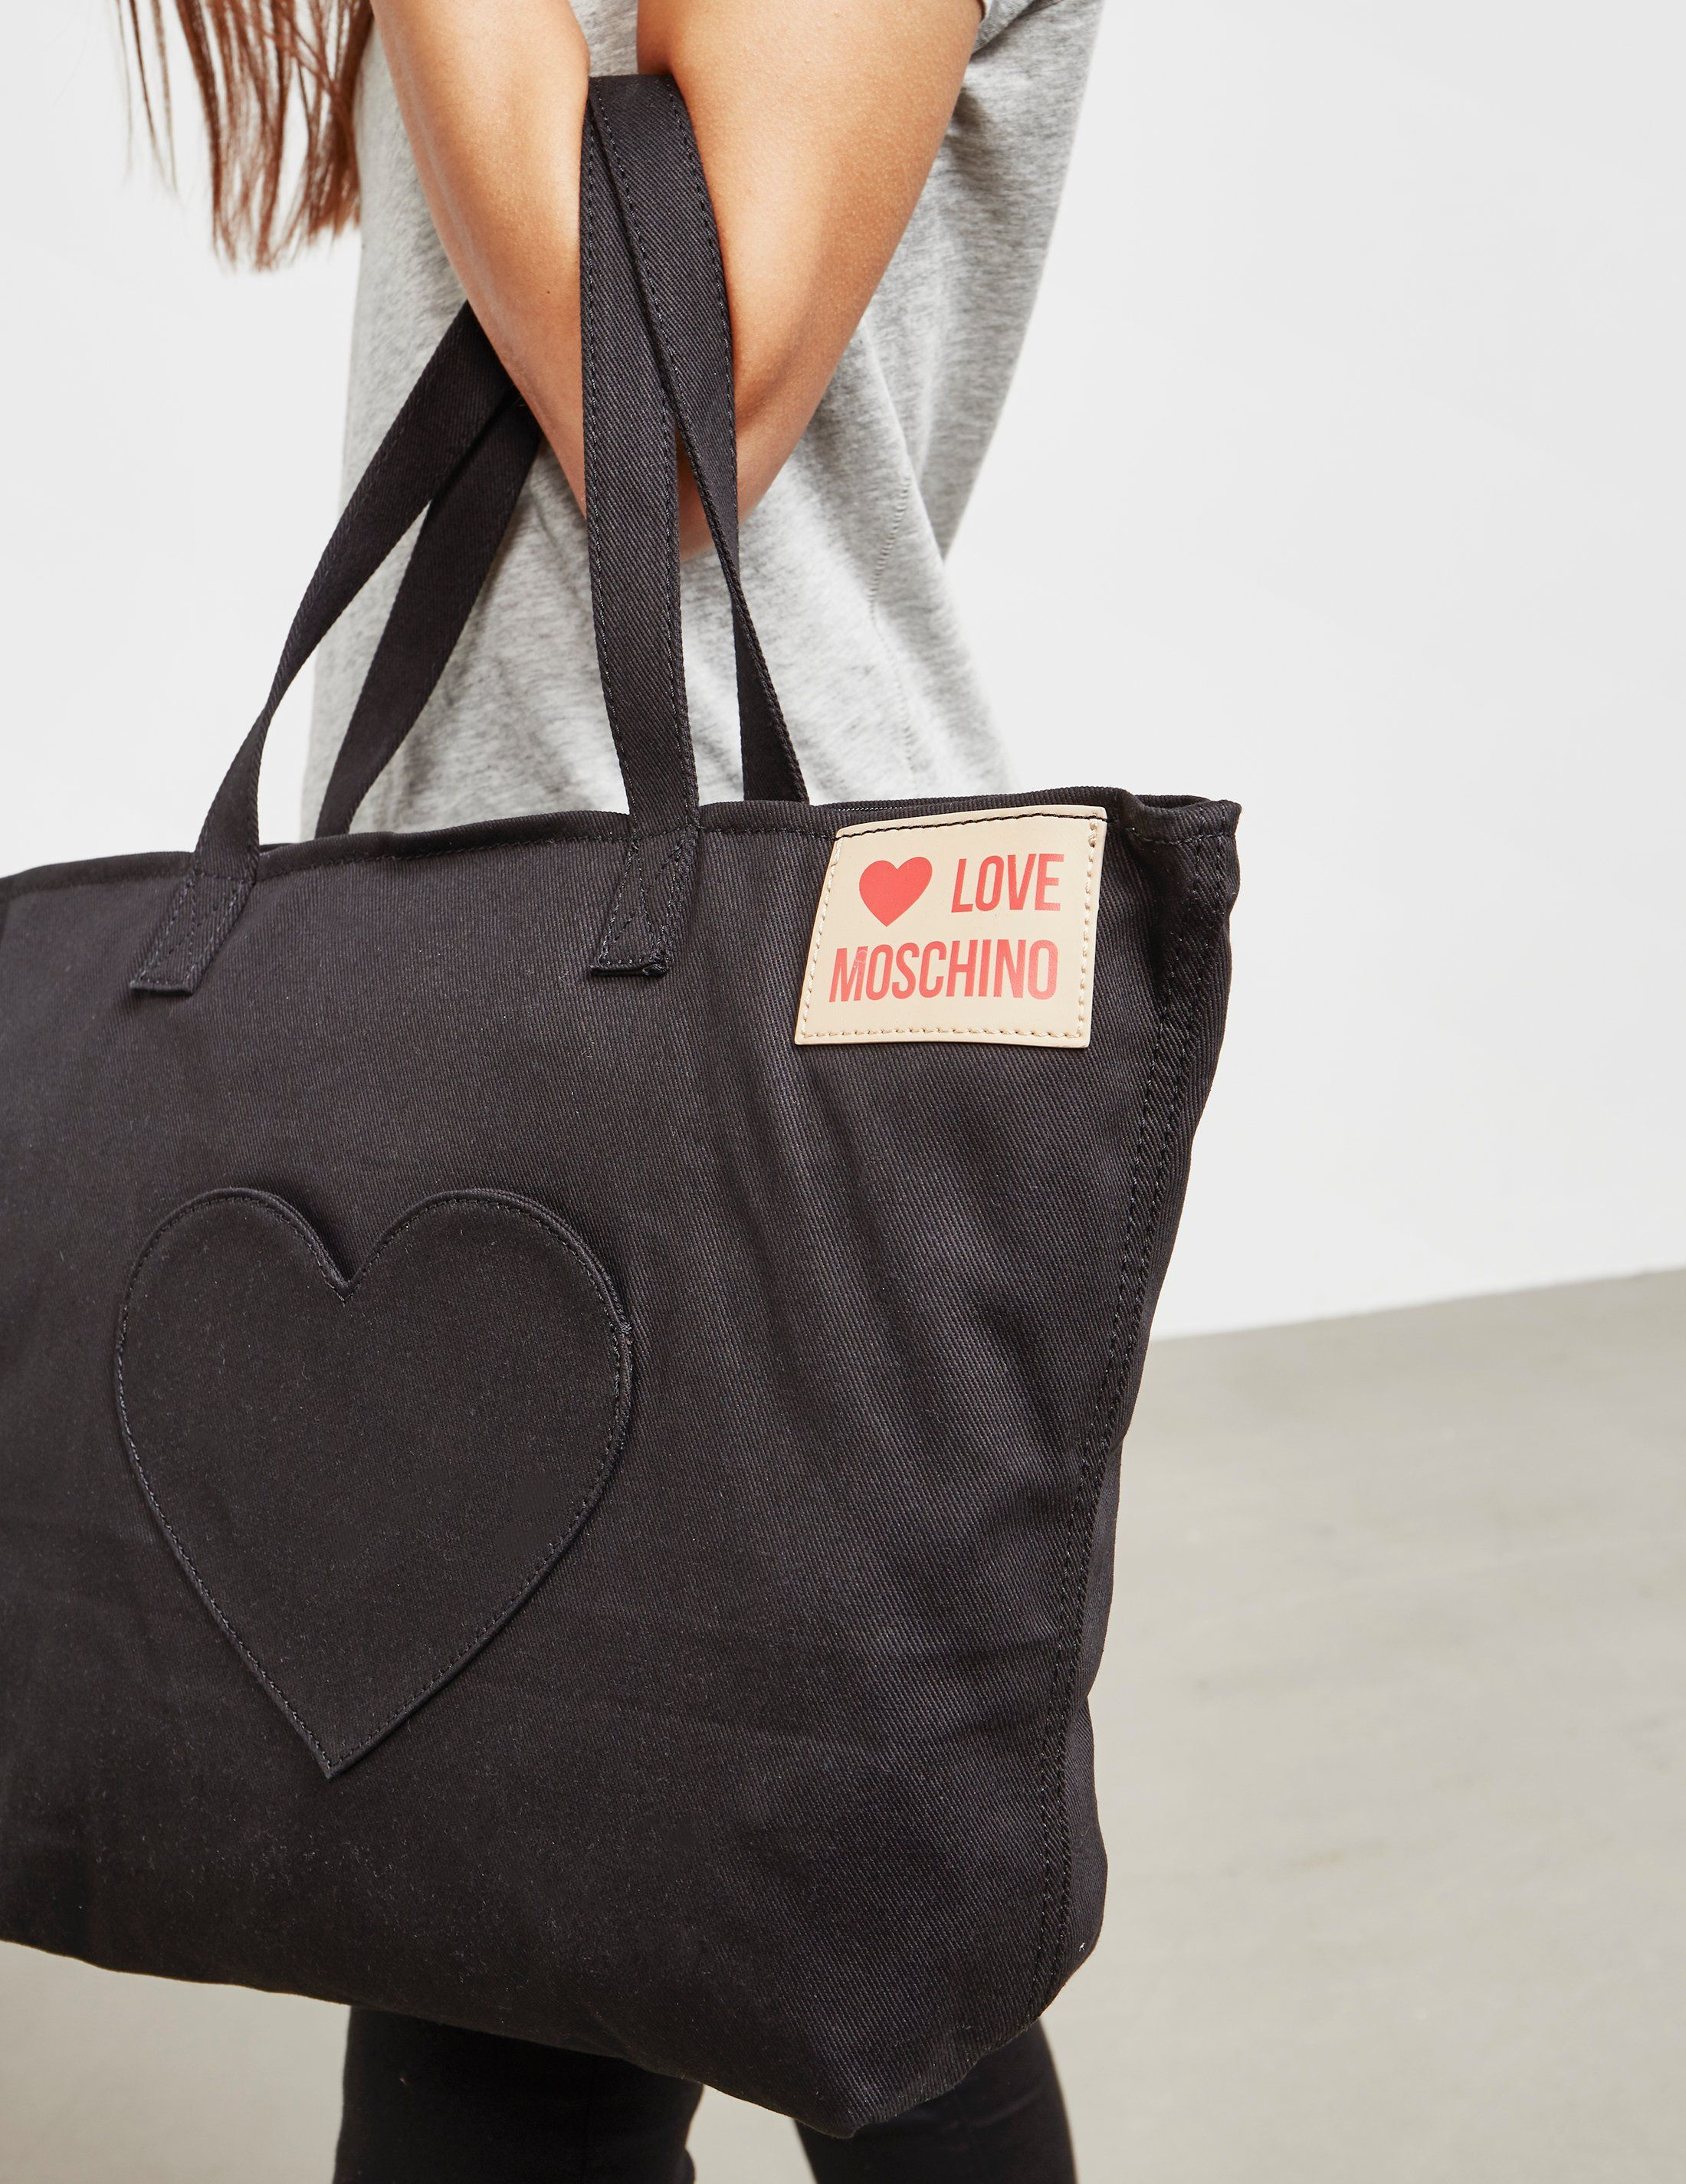 Love Moschino Heart Canvas Tote Bag - Online Exclusive